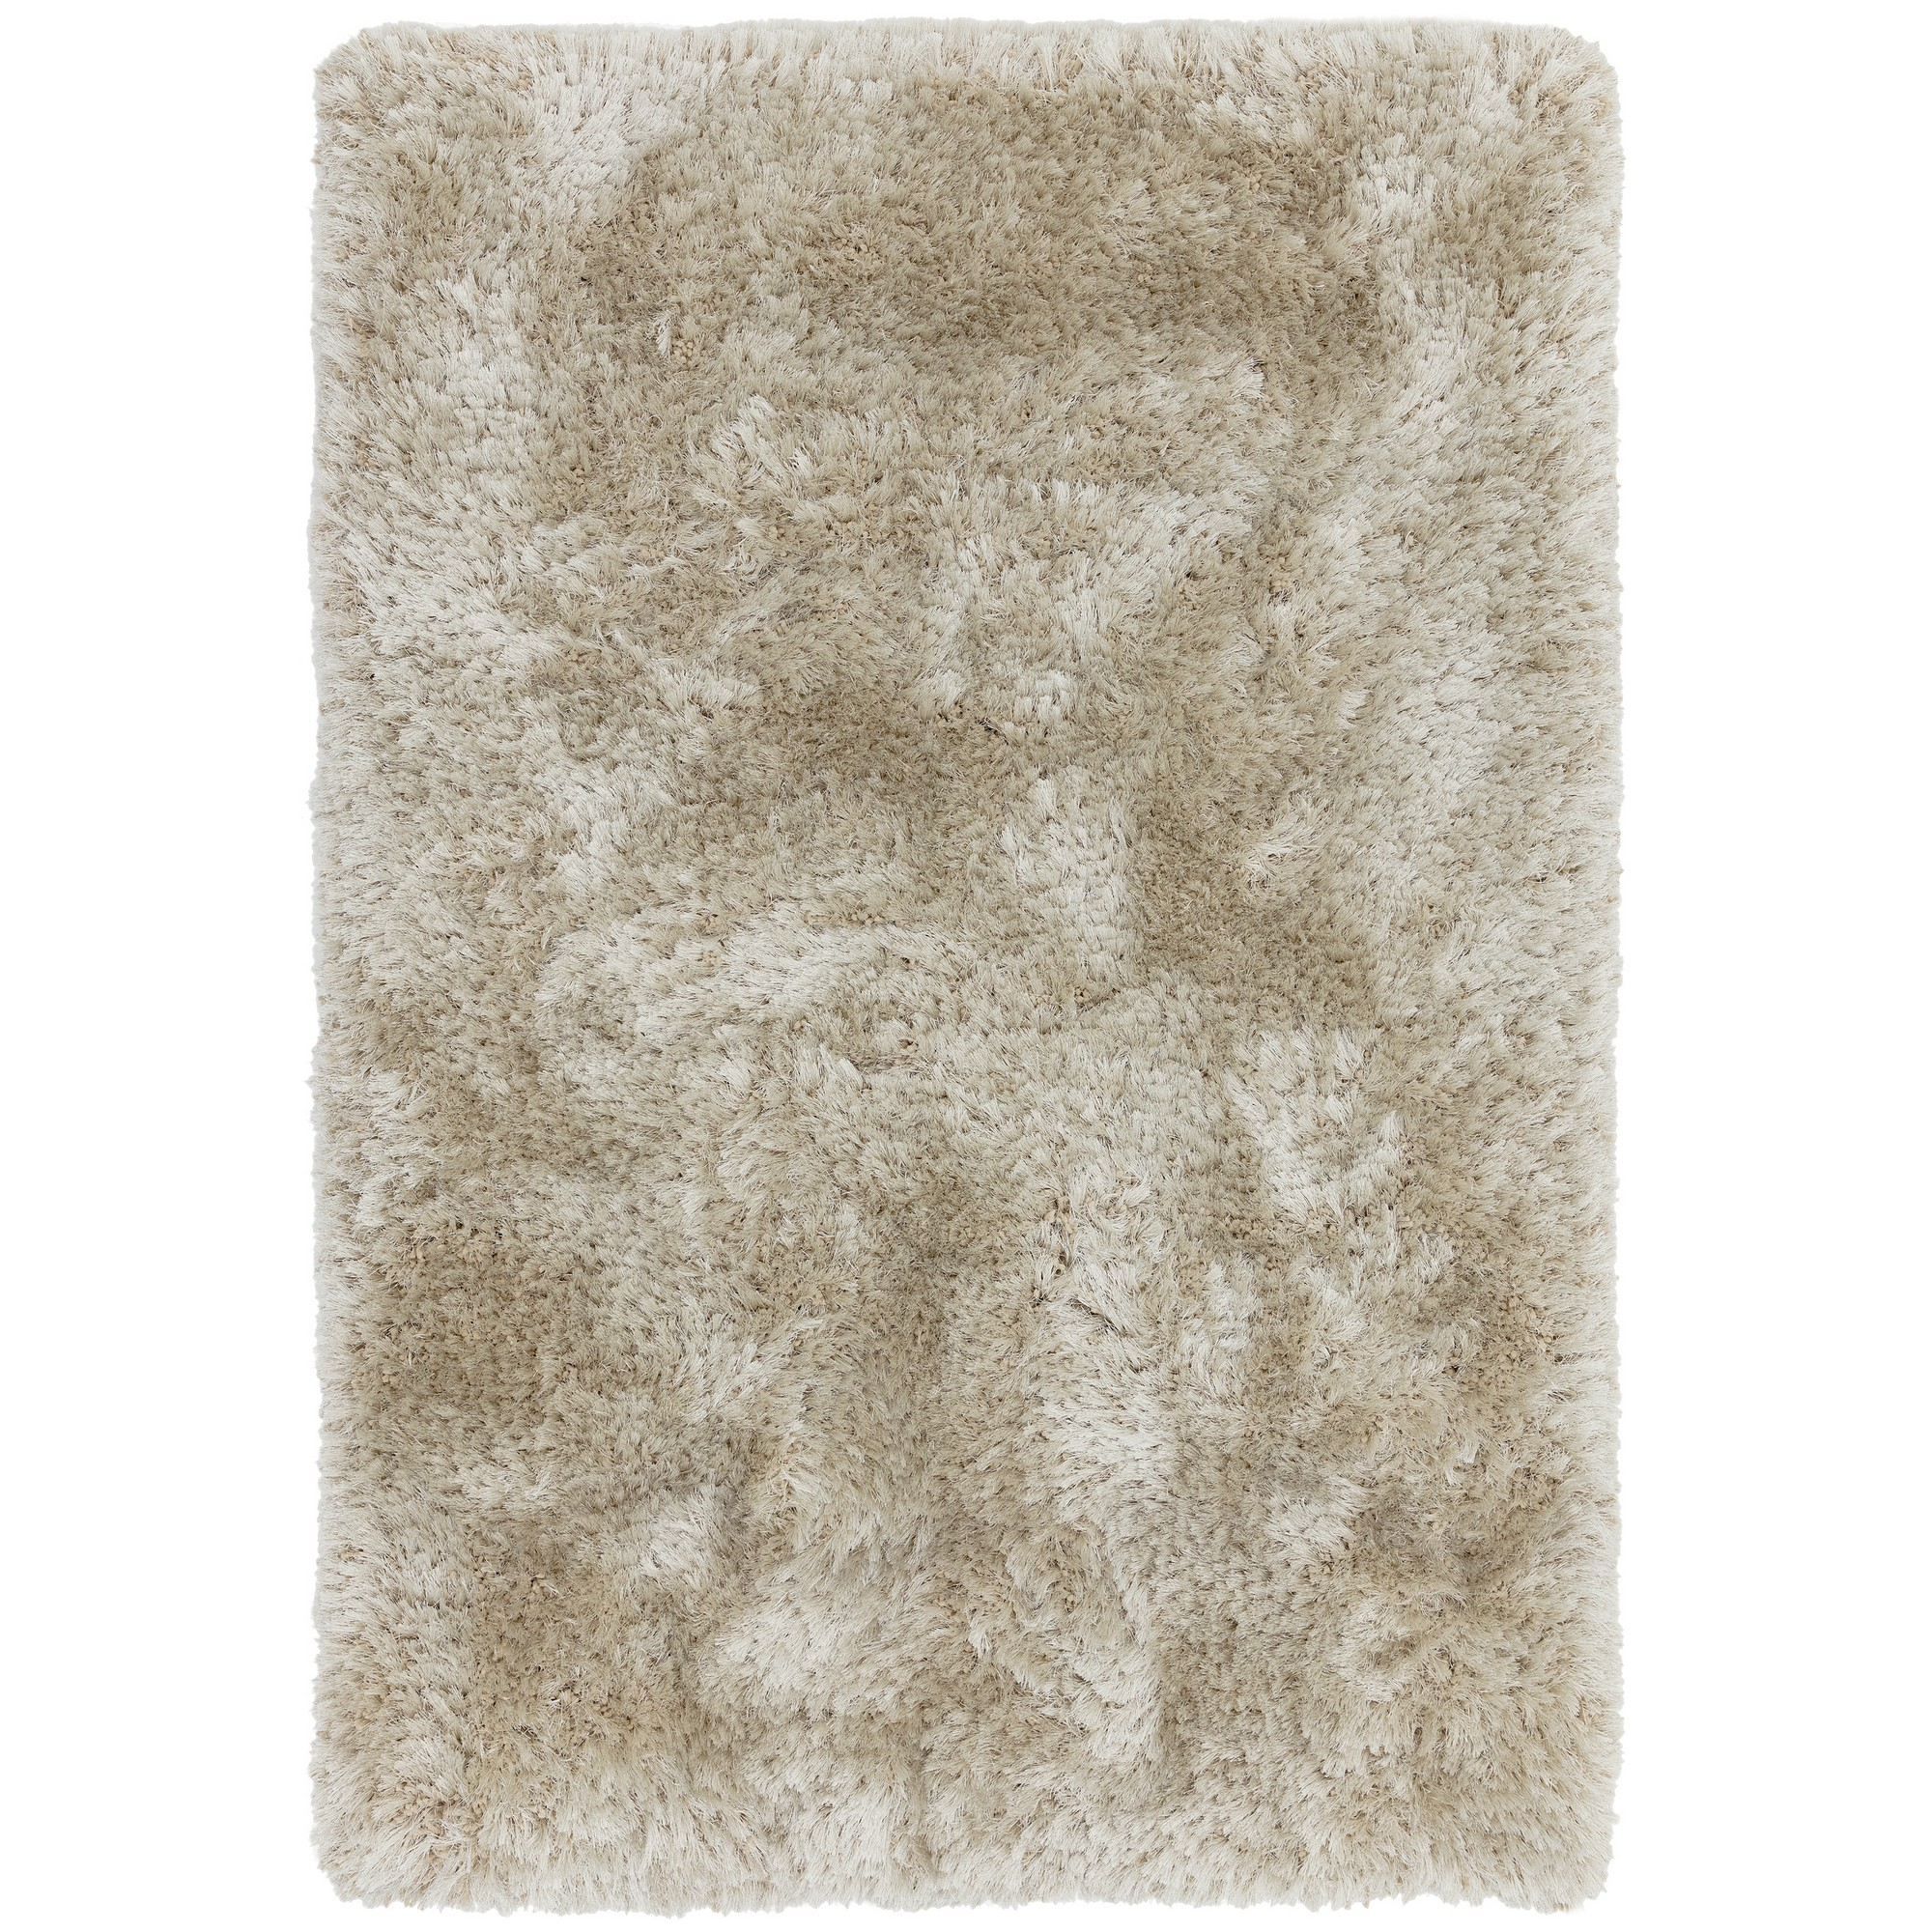 Plush Dusk Rug: Plush Shaggy Rugs In Red Buy Online From The Rug Seller Uk